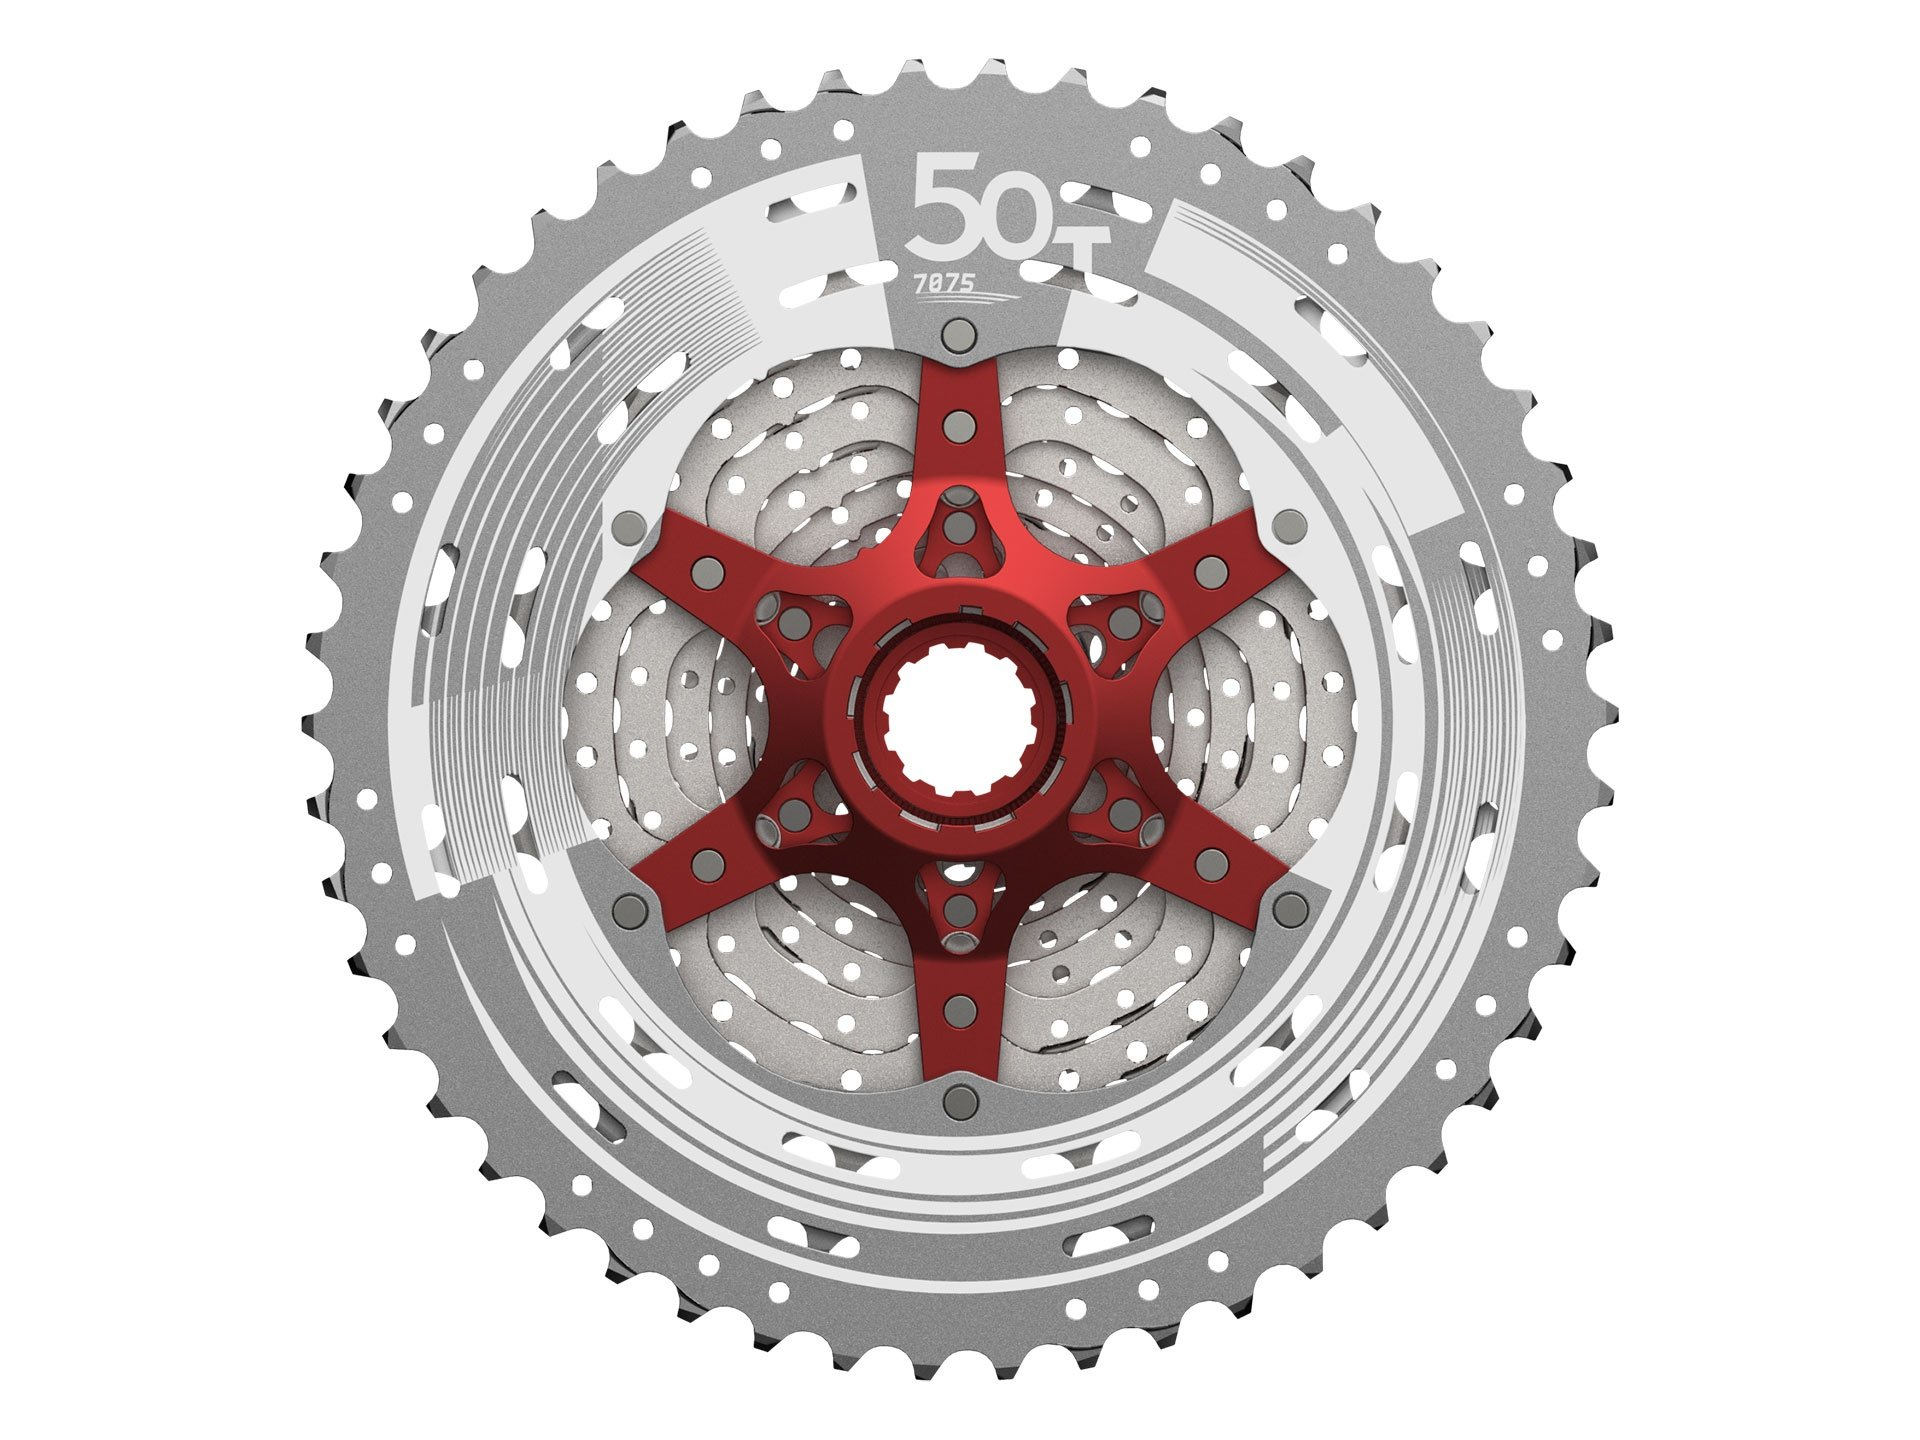 Sunrace 11-50T CSMX80 wide ratio 11-speed MTB Cassette with rear derailleur link by JGbike (Metallic Silver)